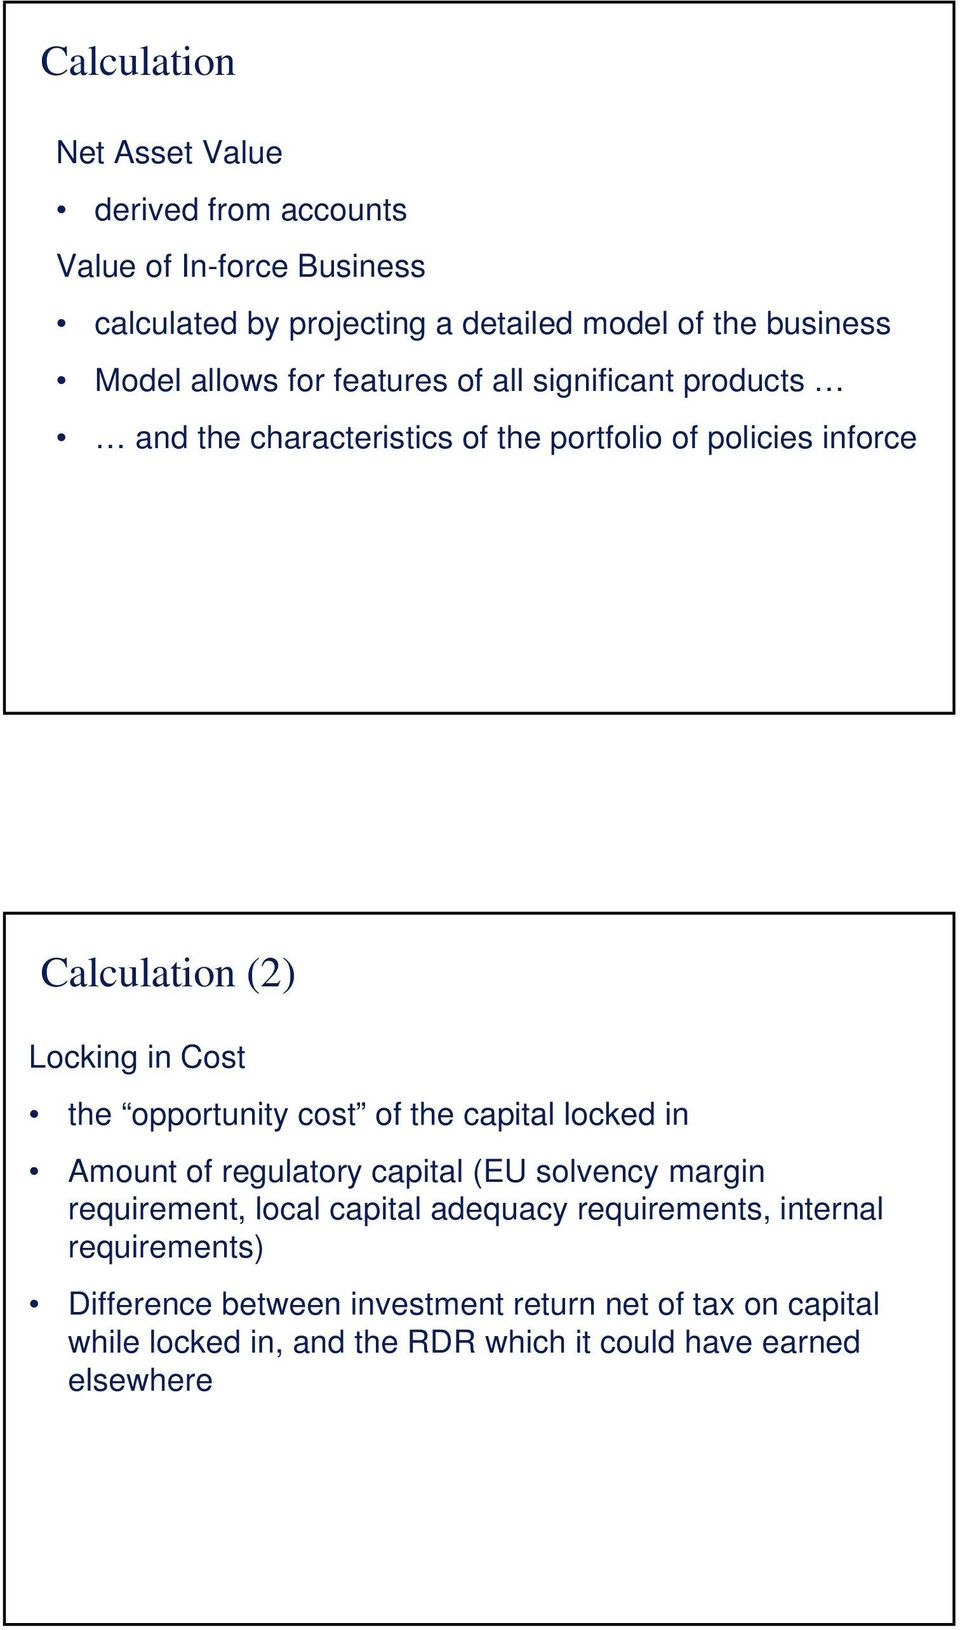 the opportunity cost of the capital locked in Amount of regulatory capital (EU solvency margin requirement, local capital adequacy